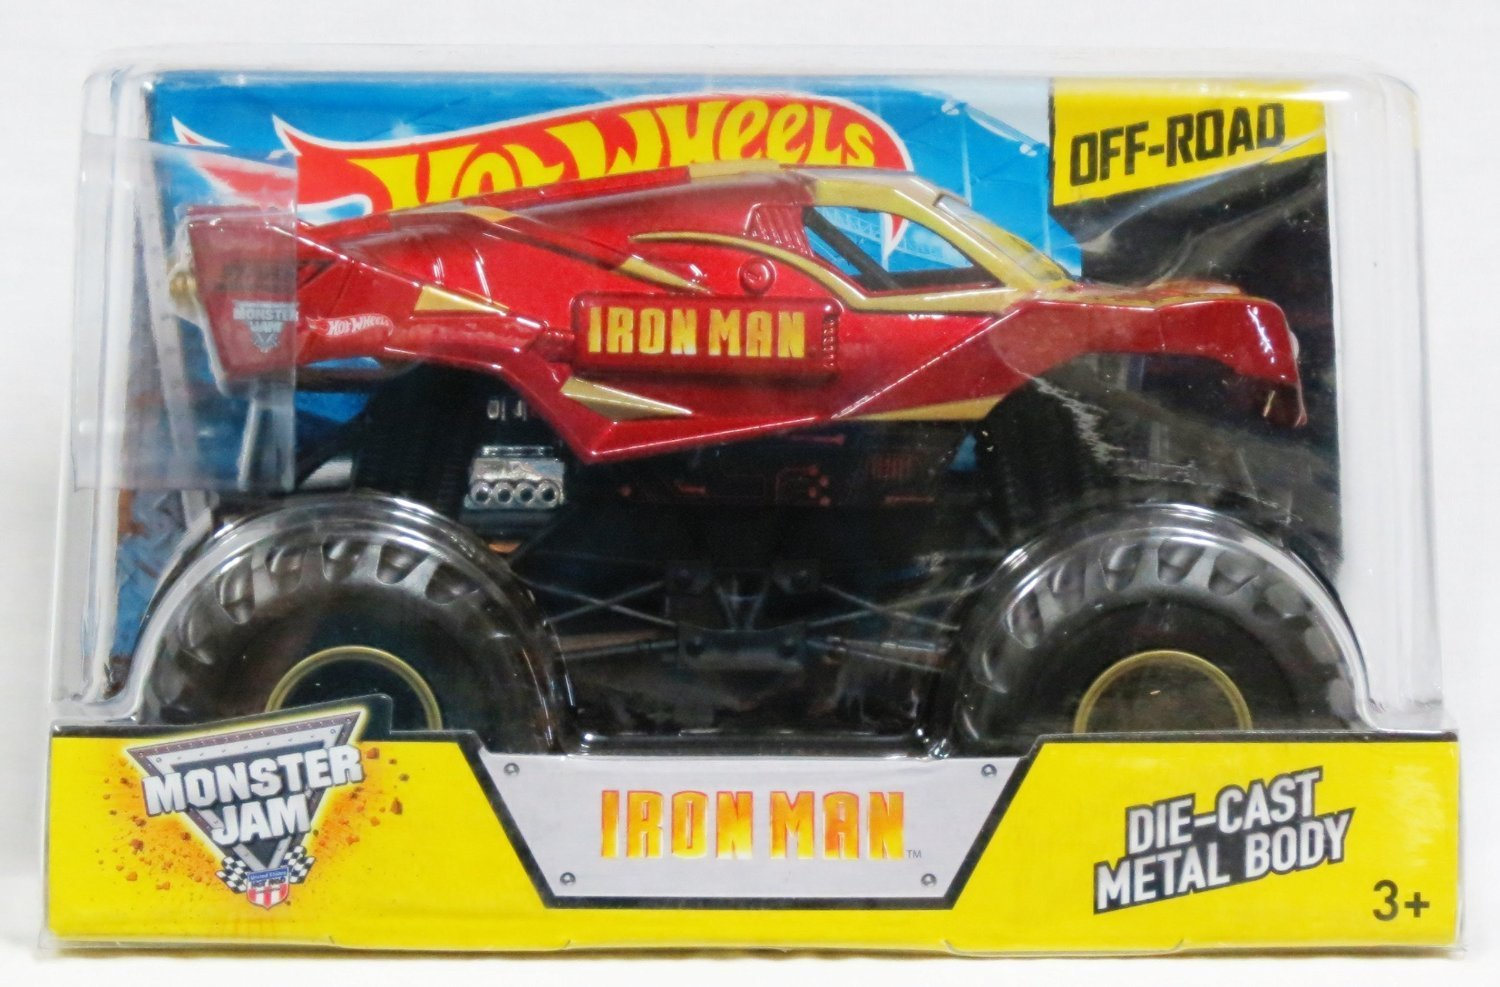 Hot Wheels Monster Jam Iron Man Scale 1:24 Off Road 2014, diecast By Mattel by